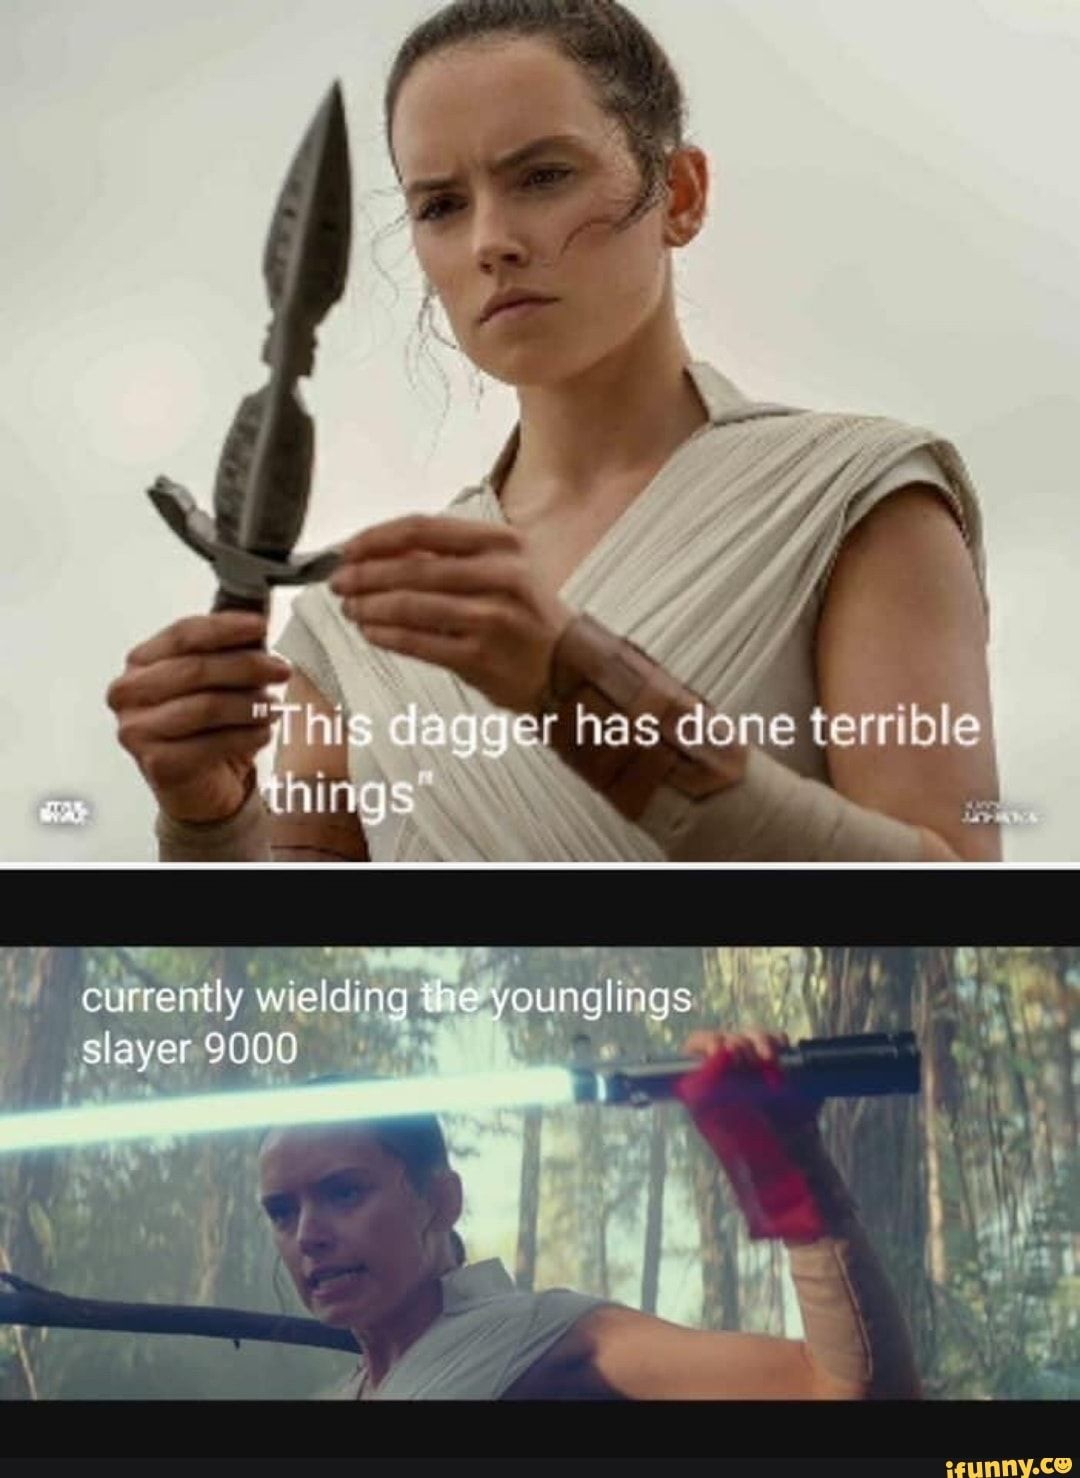 Ger Has Done Terrible Thirig Currently Wielding The Younglings Slayer 9000 Ifunny Star Wars Humor Star Wars Jokes Star Wars Pictures